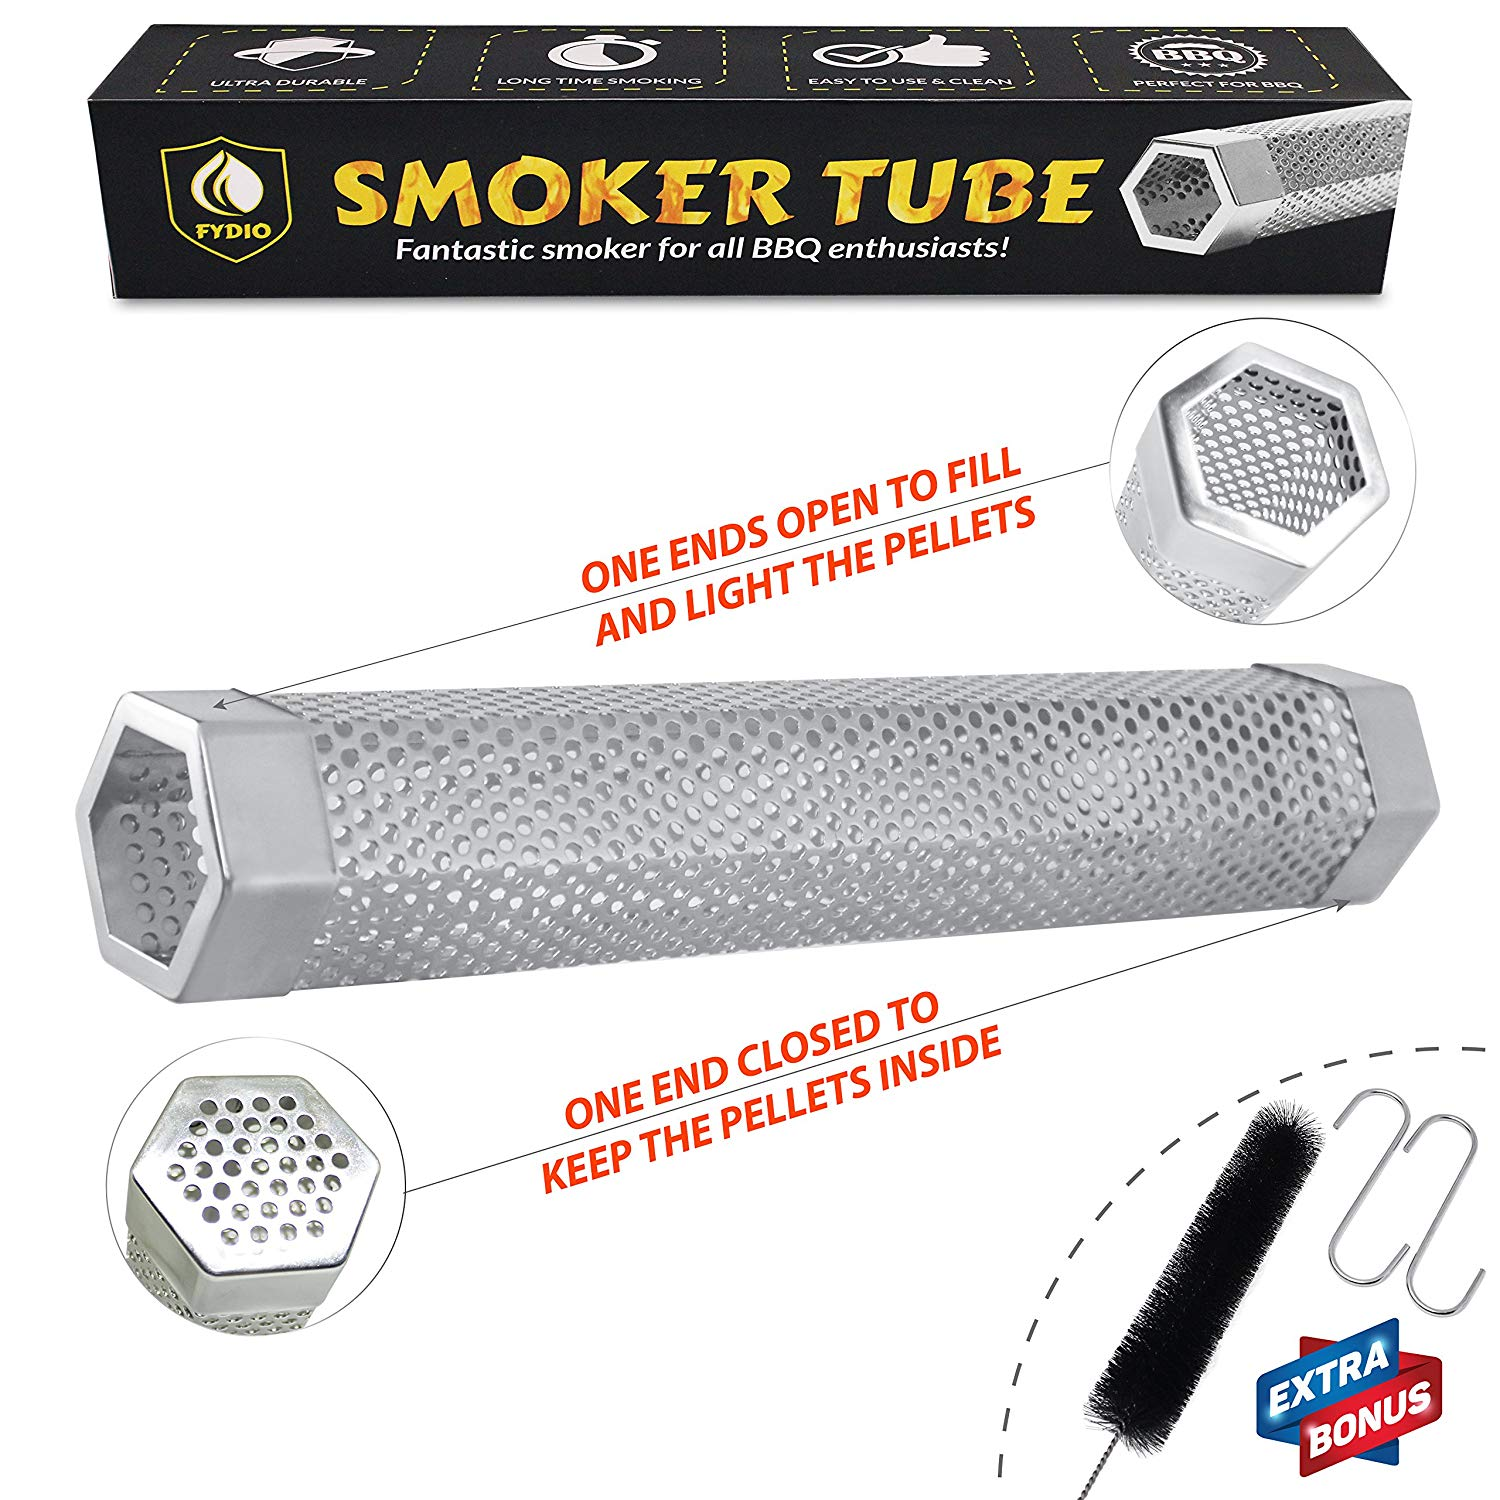 Fydio Premium Smoker Tube 12 Inch: Stainless Steel Hexagon Tube | Perfect for BBQ | Tasty Smoke Flavor | Work on any Grill or Smoker with Hot or Cold Smoking | FREE BONUS: Tube Brush & 2 S-Hooks